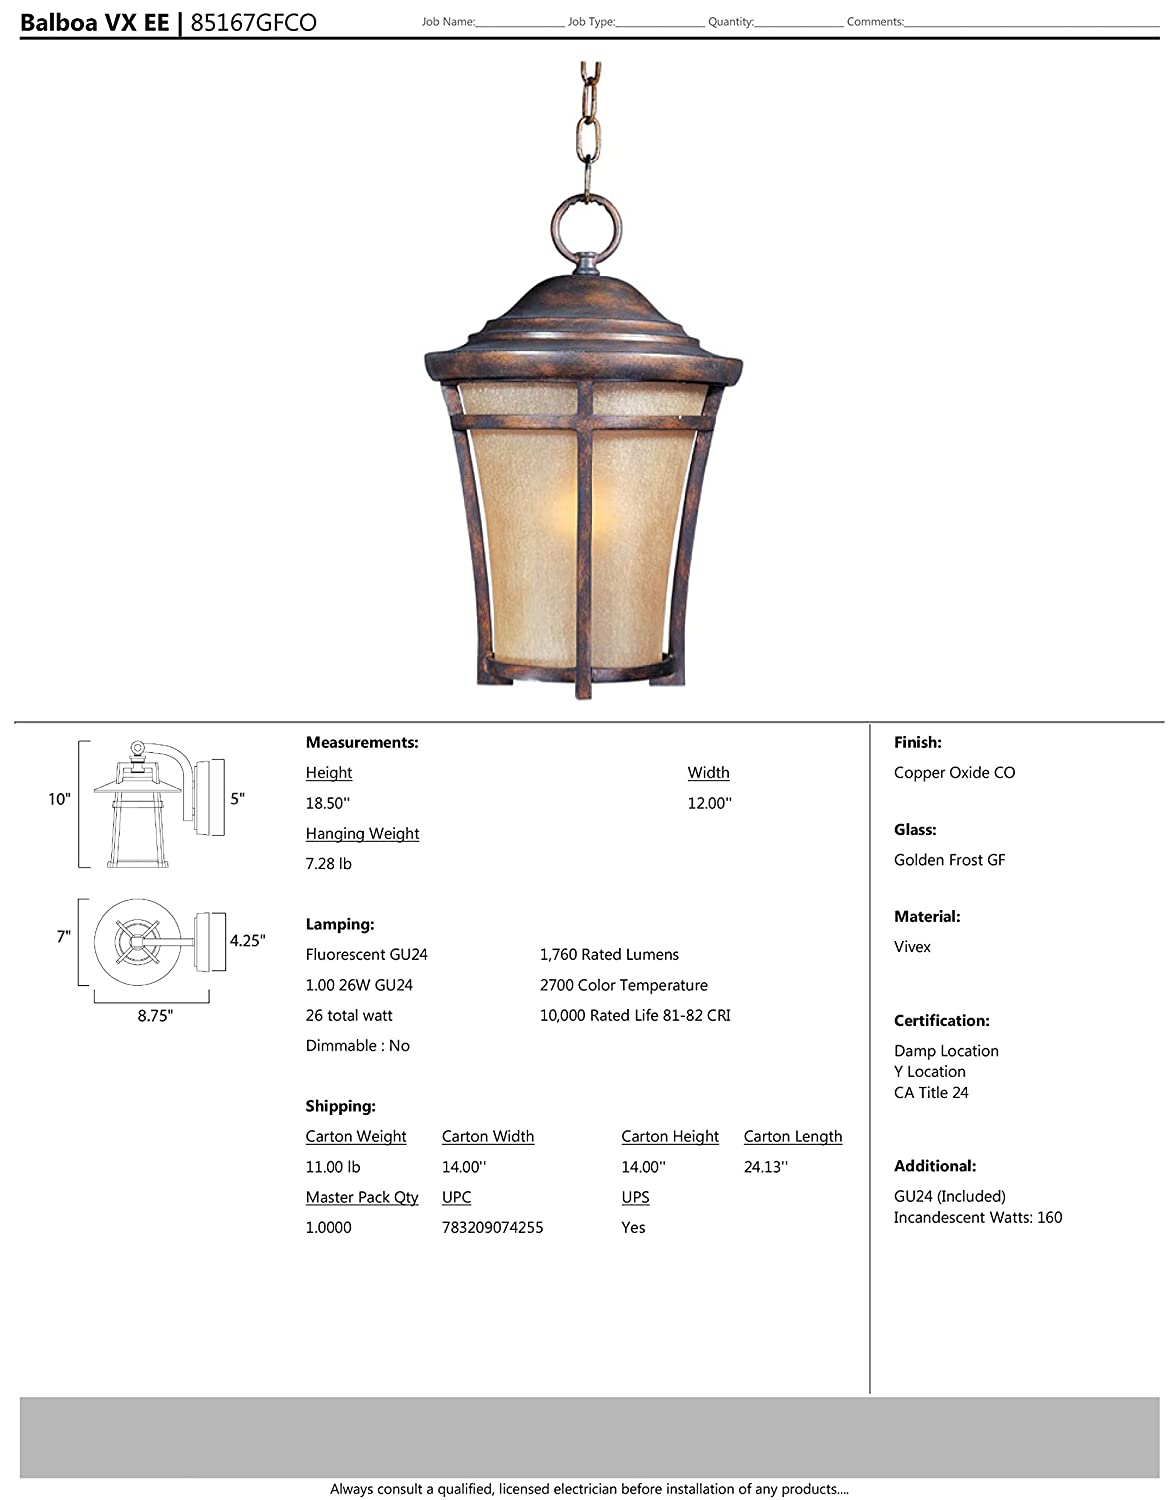 Dry Safety Rating GU24 Fluorescent Bulb Maxim 85167GFCO Balboa VX EE 1-Light Outdoor Hanging Glass Shade Material Golden Frost Glass 100W Max. Copper Oxide Finish 1150 Rated Lumens Standard Dimmable